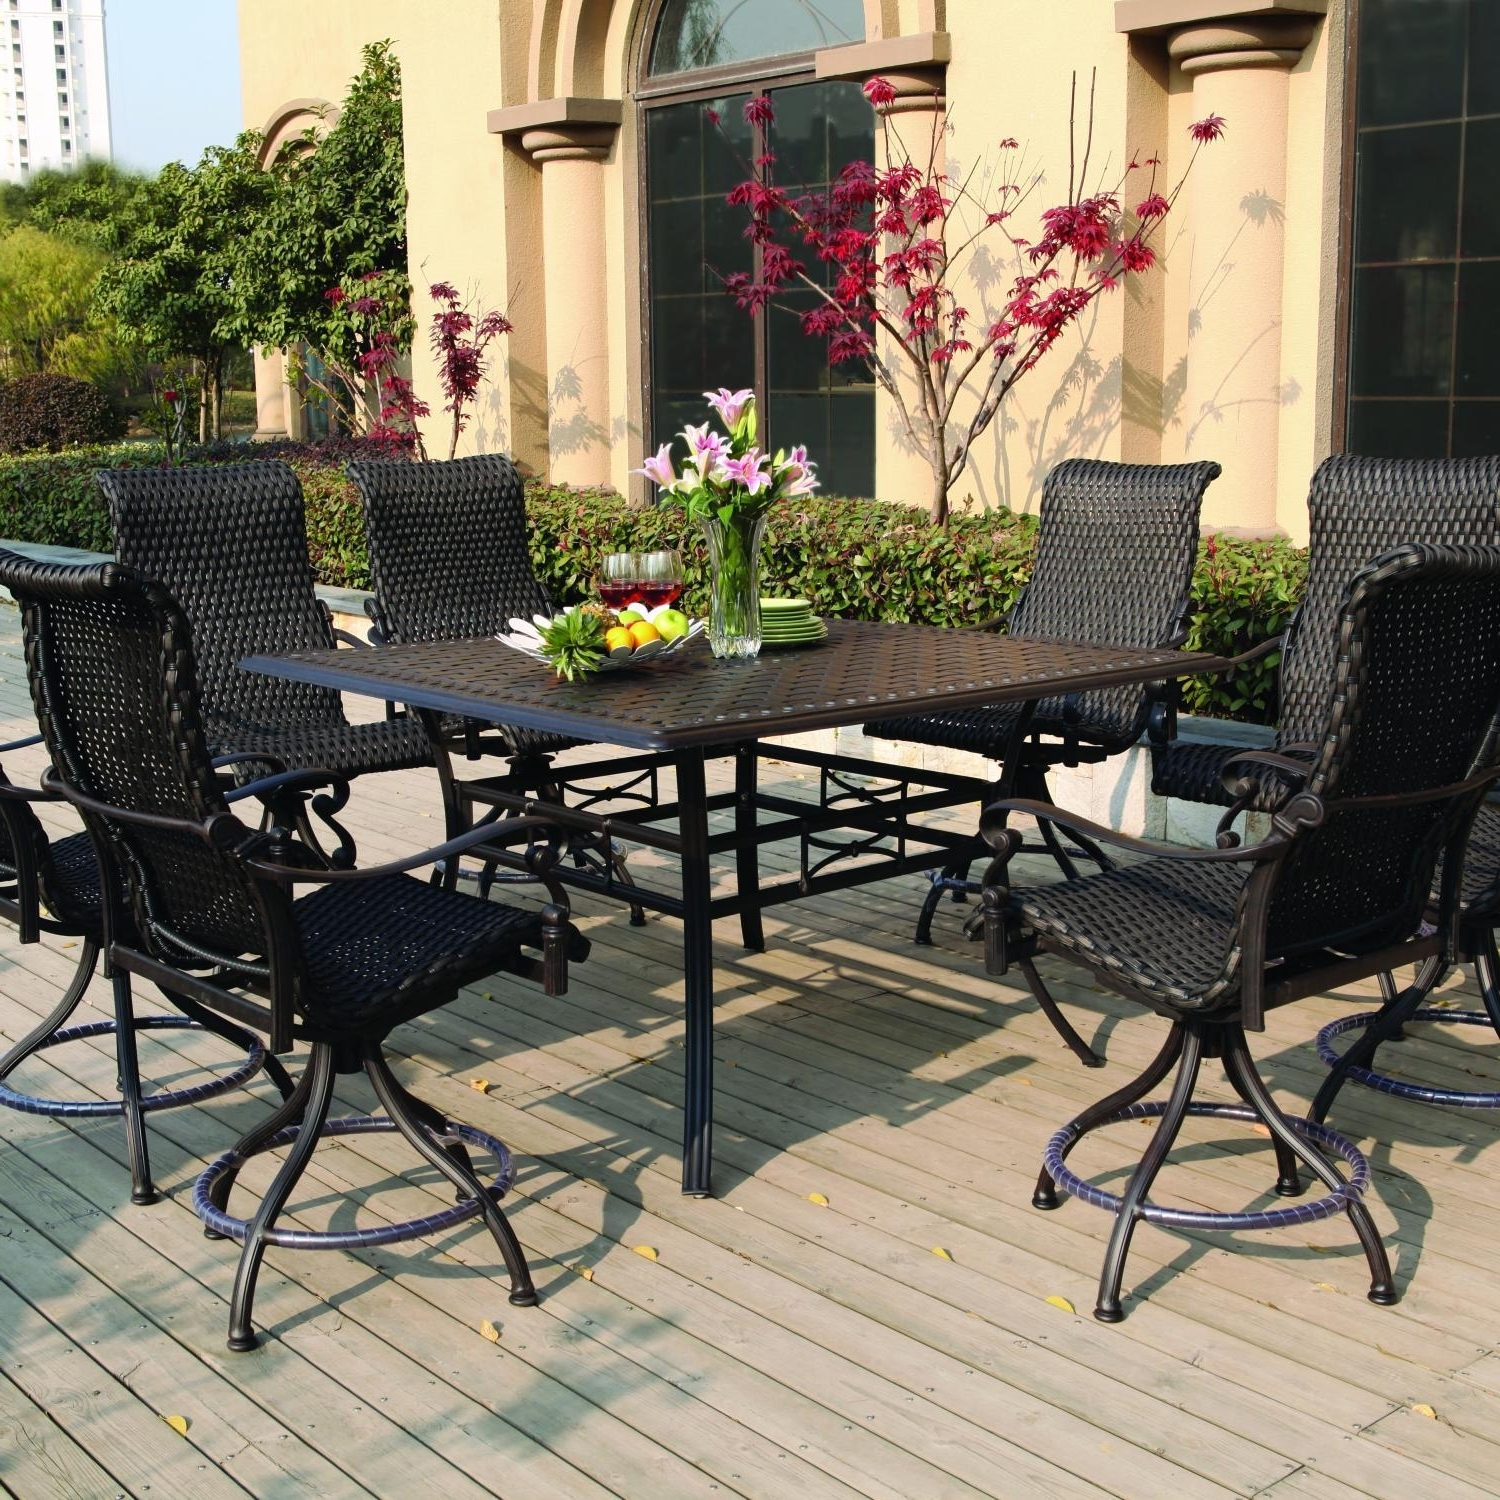 Well Known Patio Umbrellas For Bar Height Tables With Regard To Darlee Victoria 9 Piece Resin Wicker Counter Height Patio Dining Set (View 12 of 20)